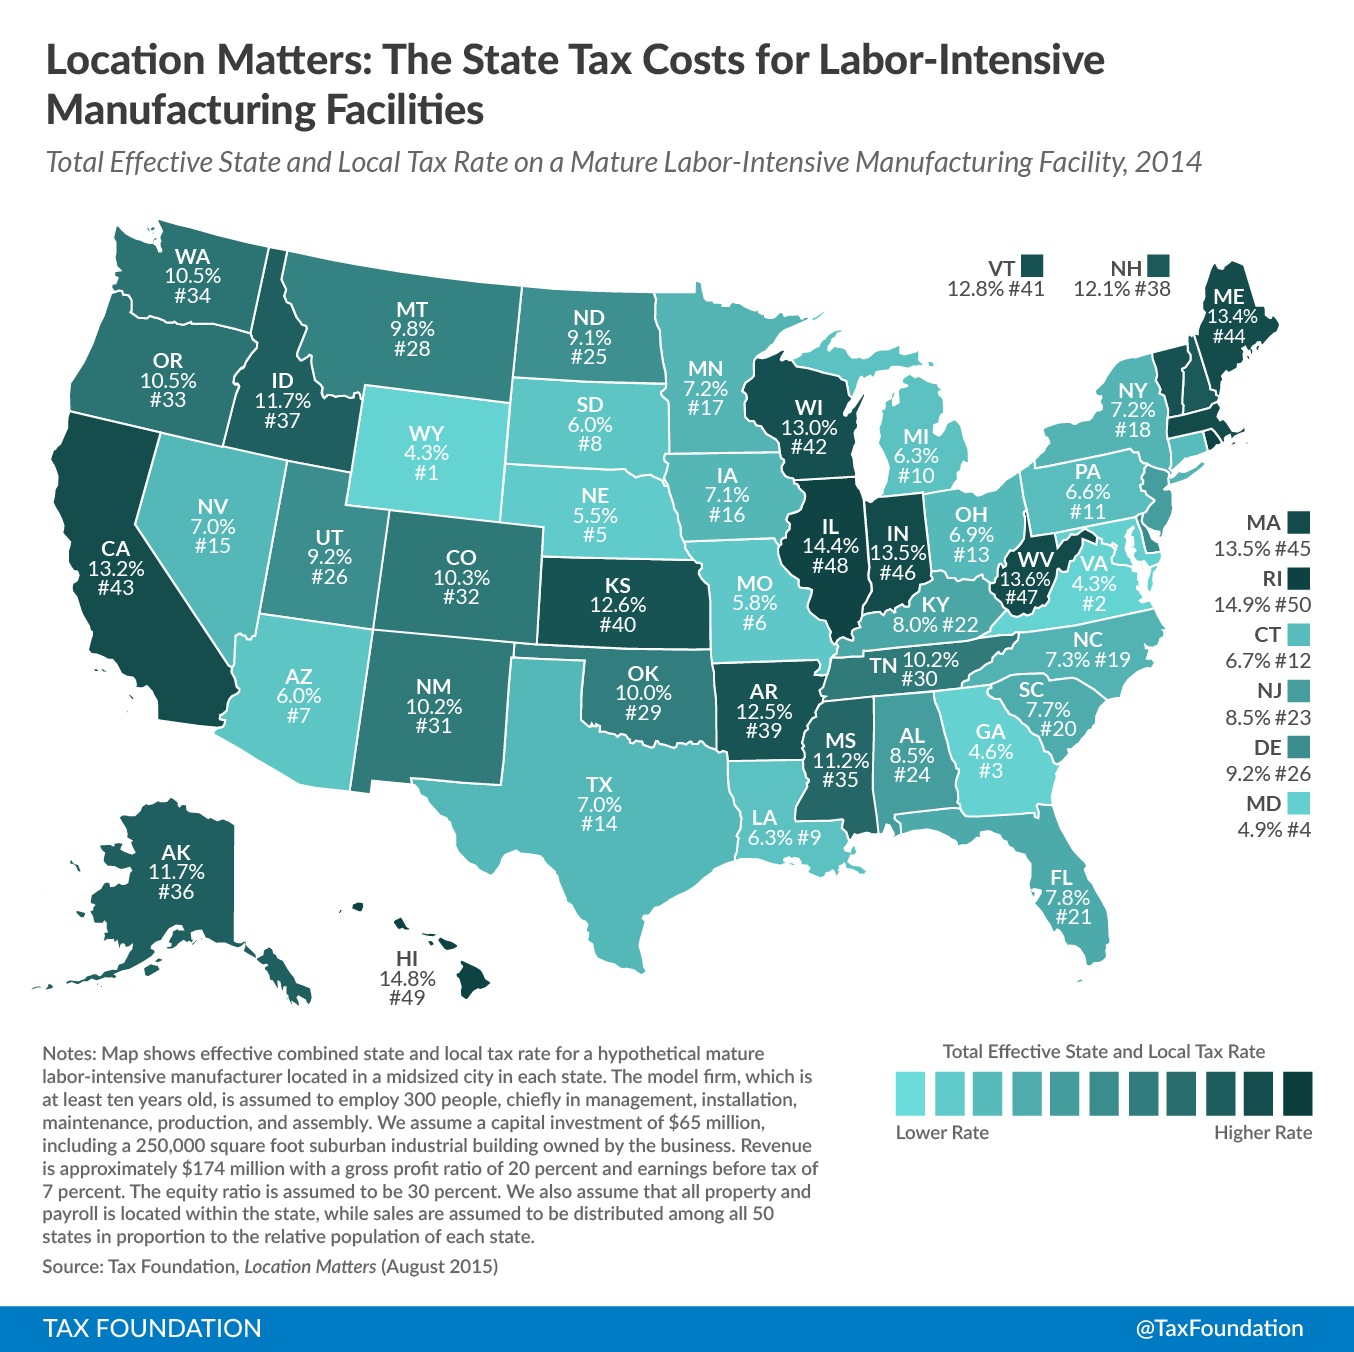 Location Matters - Labor-Intensive Manufacturers